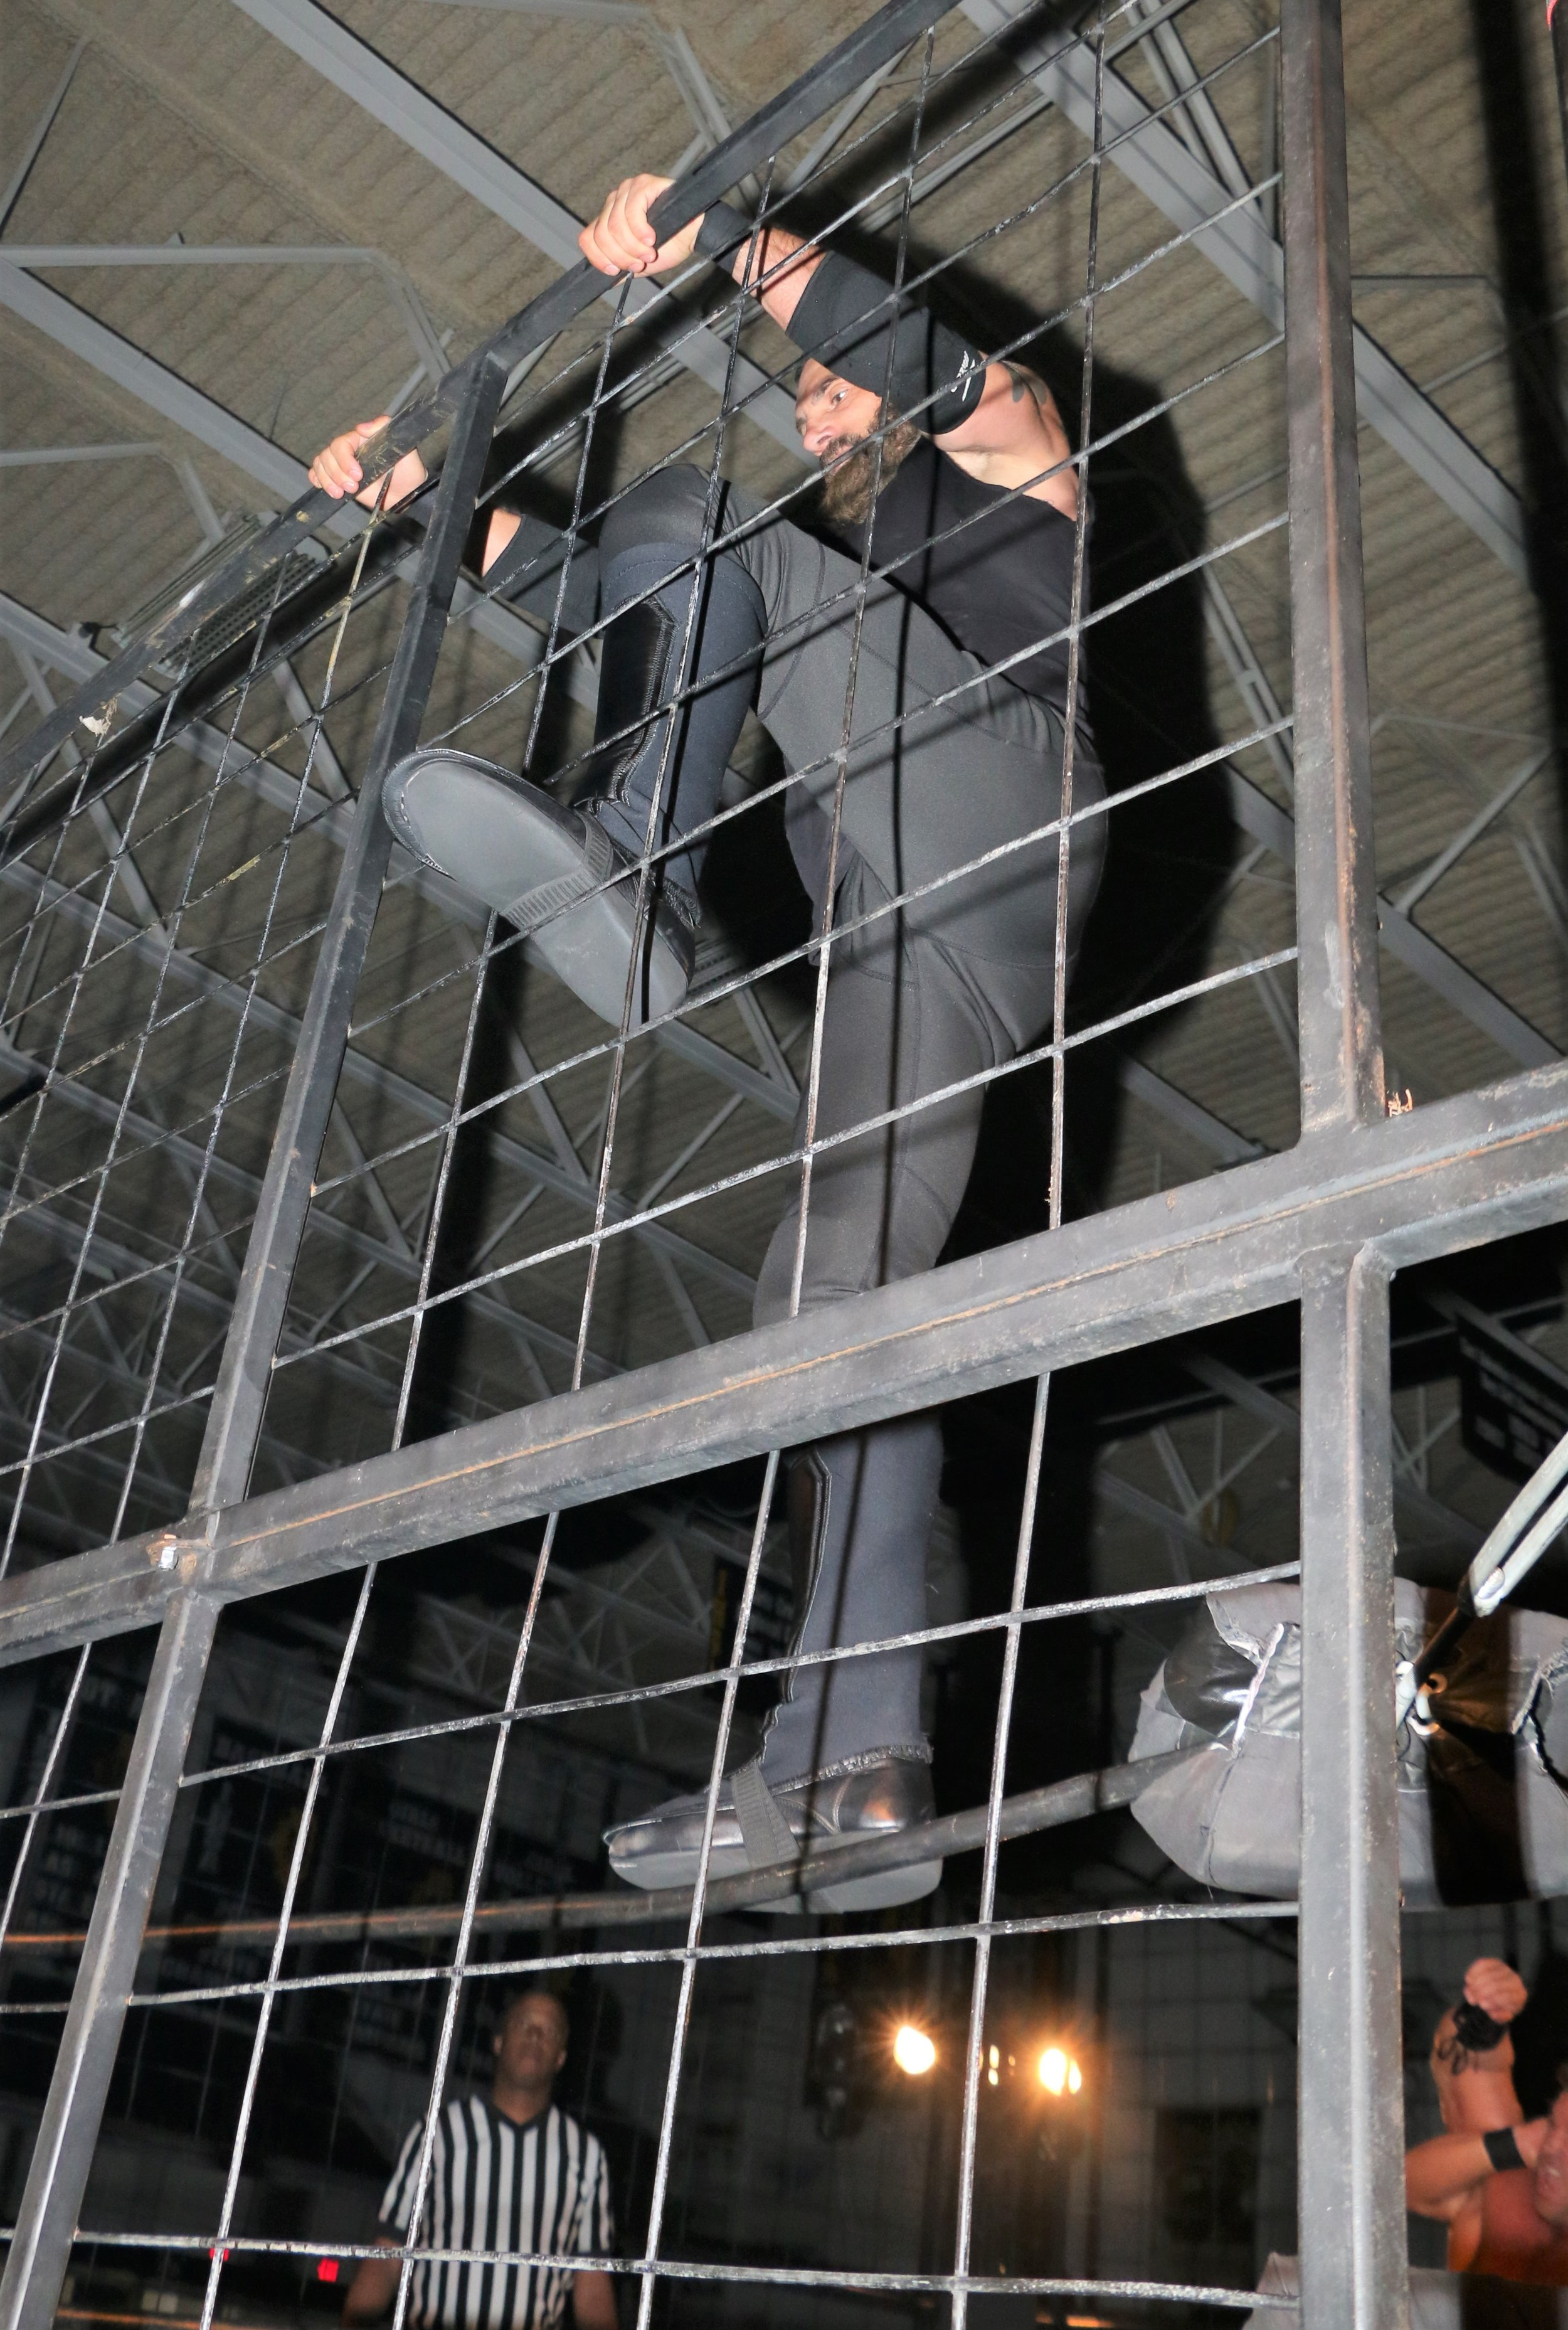 Austin Aries tries to escape the cage.